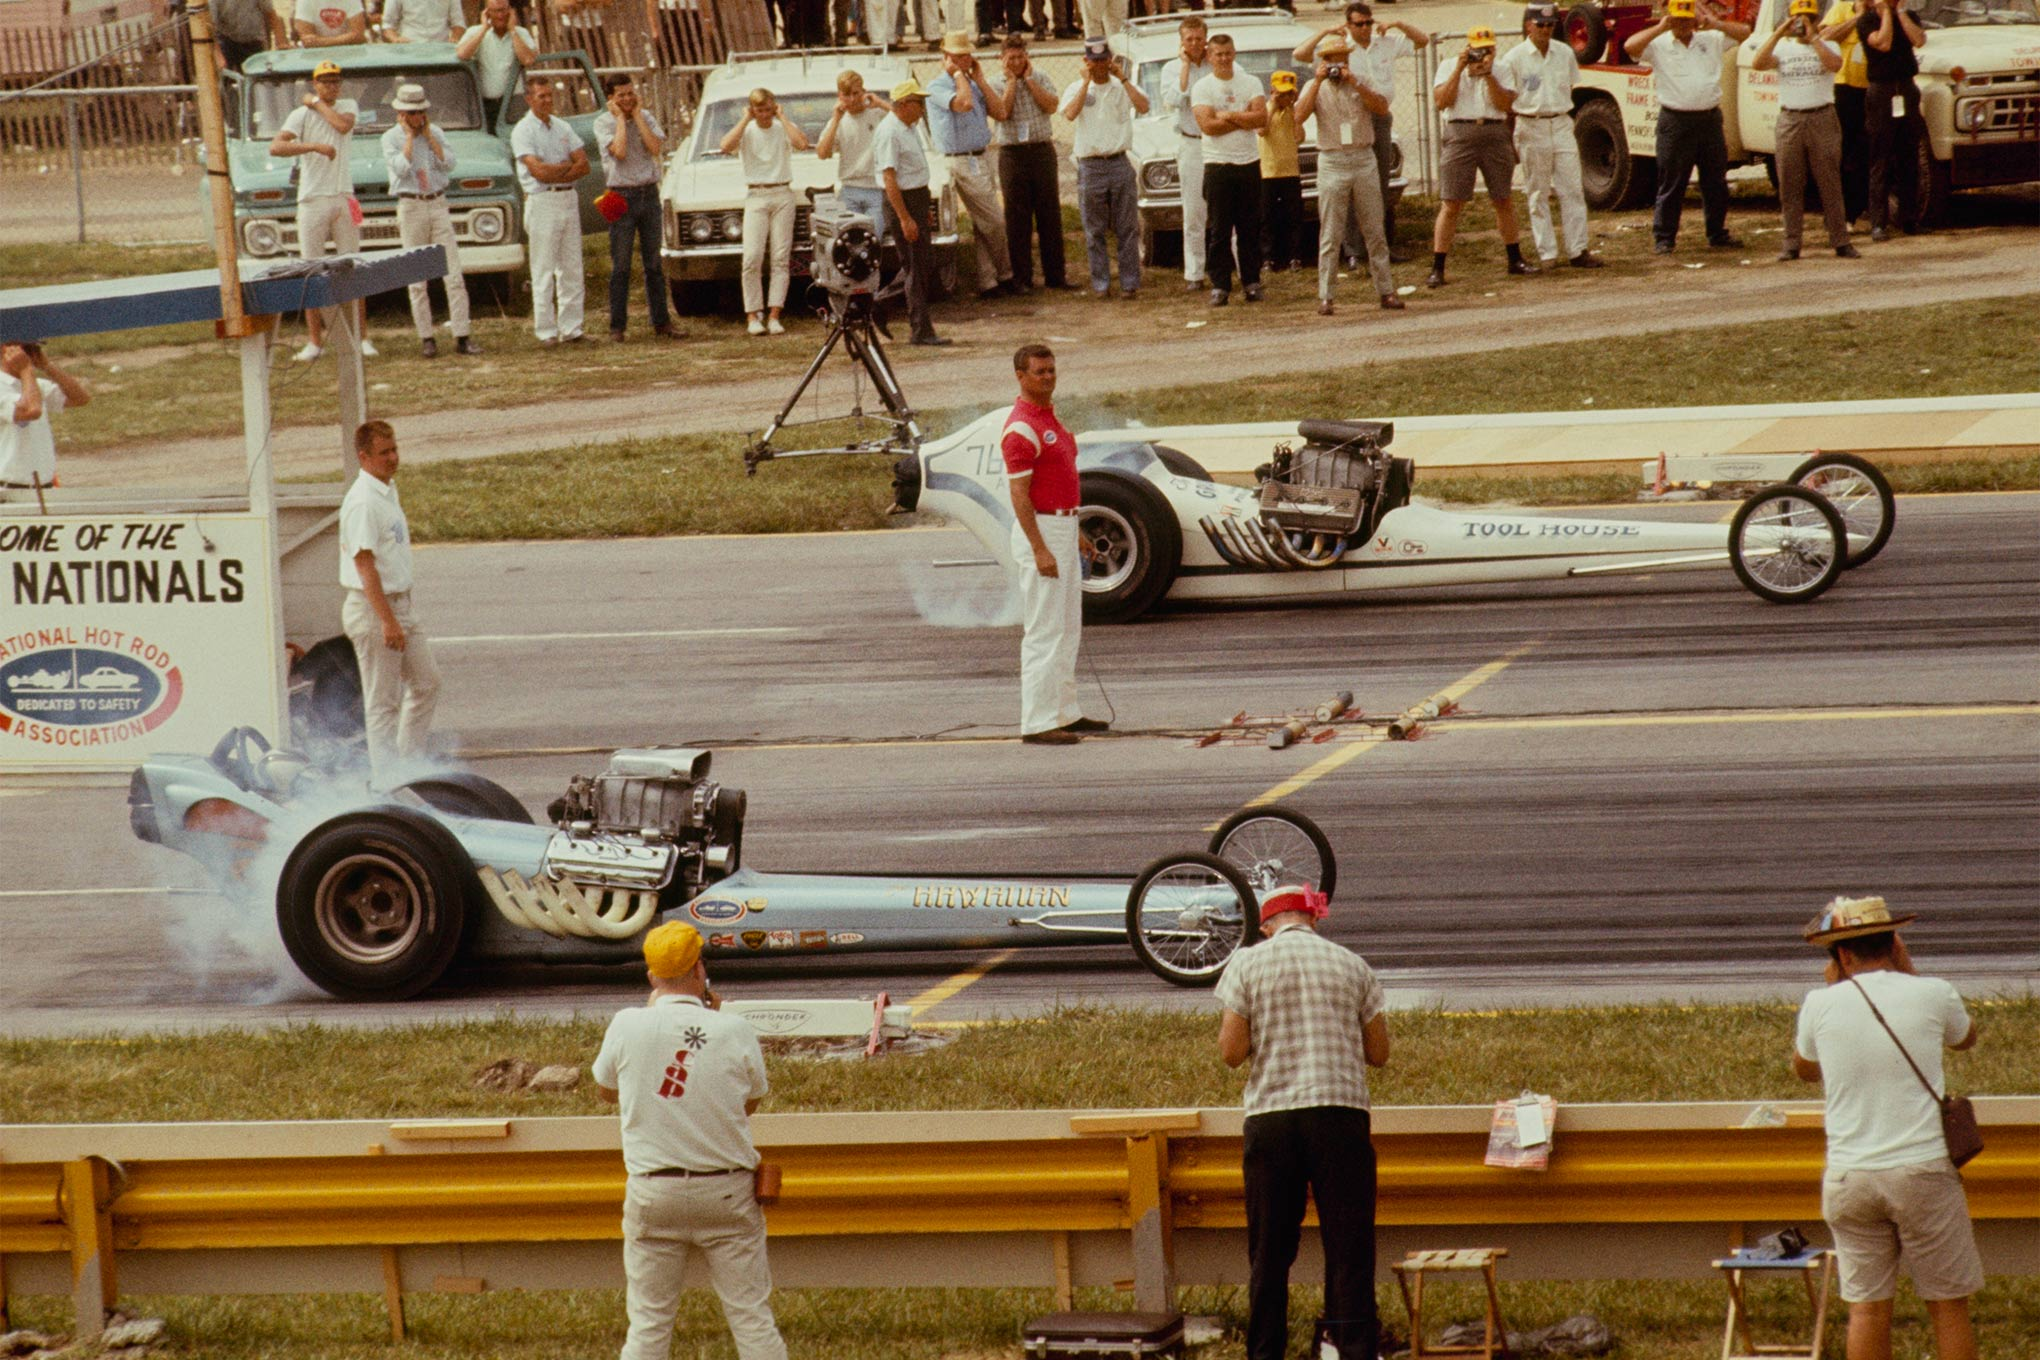 Don Prudhomme beat Larry Posluszny's Tool House dragster out of Detroit, in Round 1 eliminations at the 1965 NHRA Nationals at Indy, with a 7.81 at 200.88 mph against Posluszny's 8.01 at 201.78 mph.